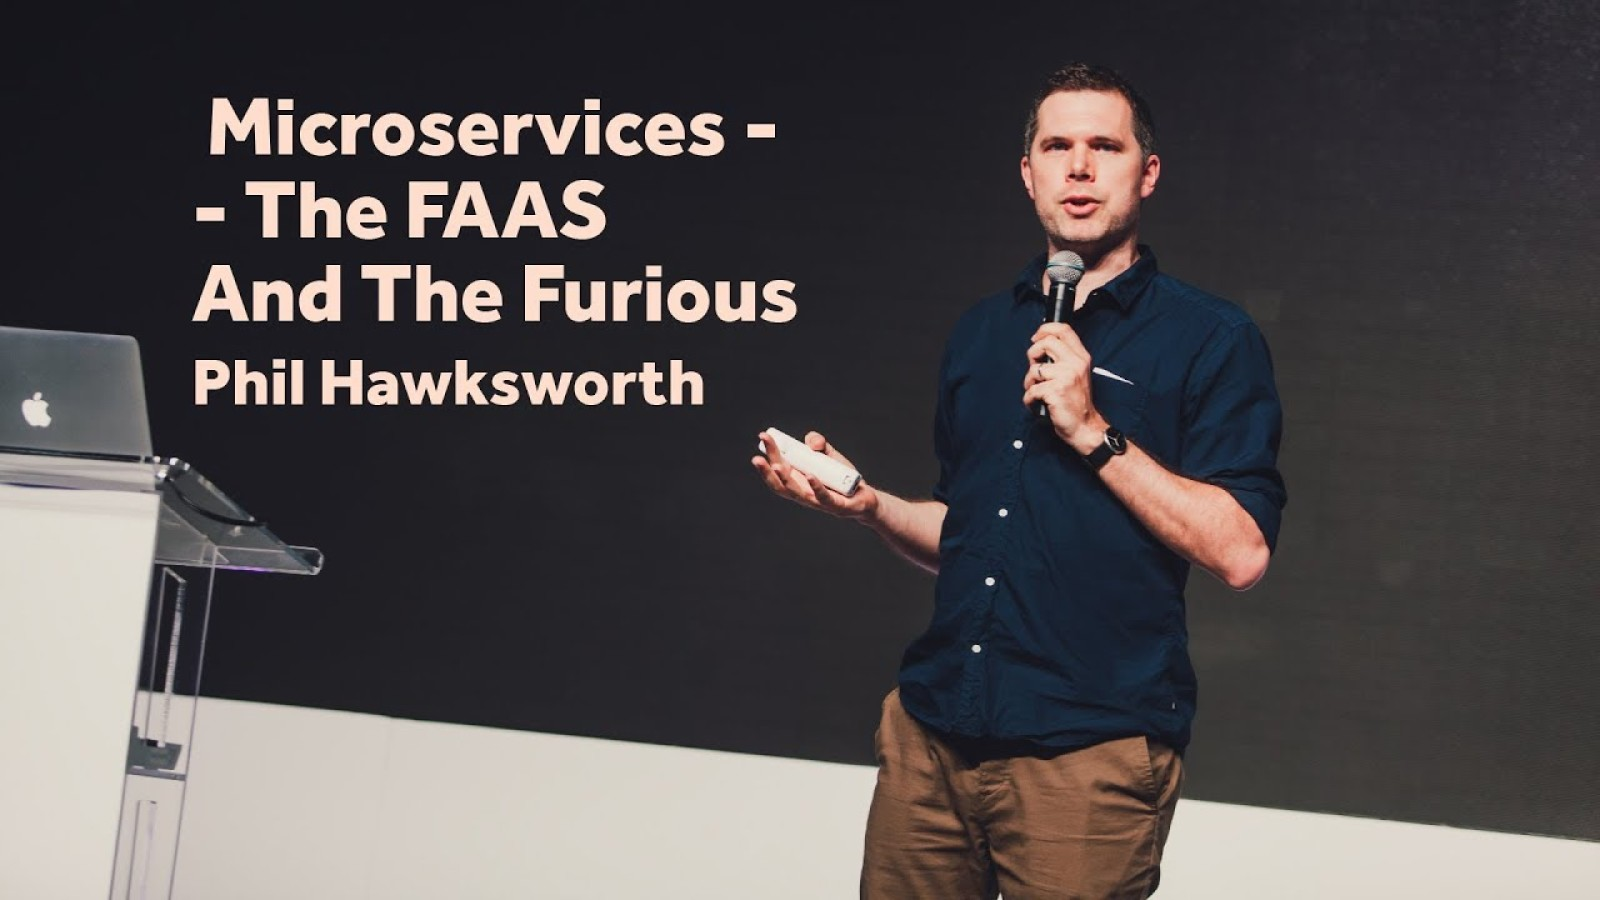 Microservices - The FAAS and the Furious